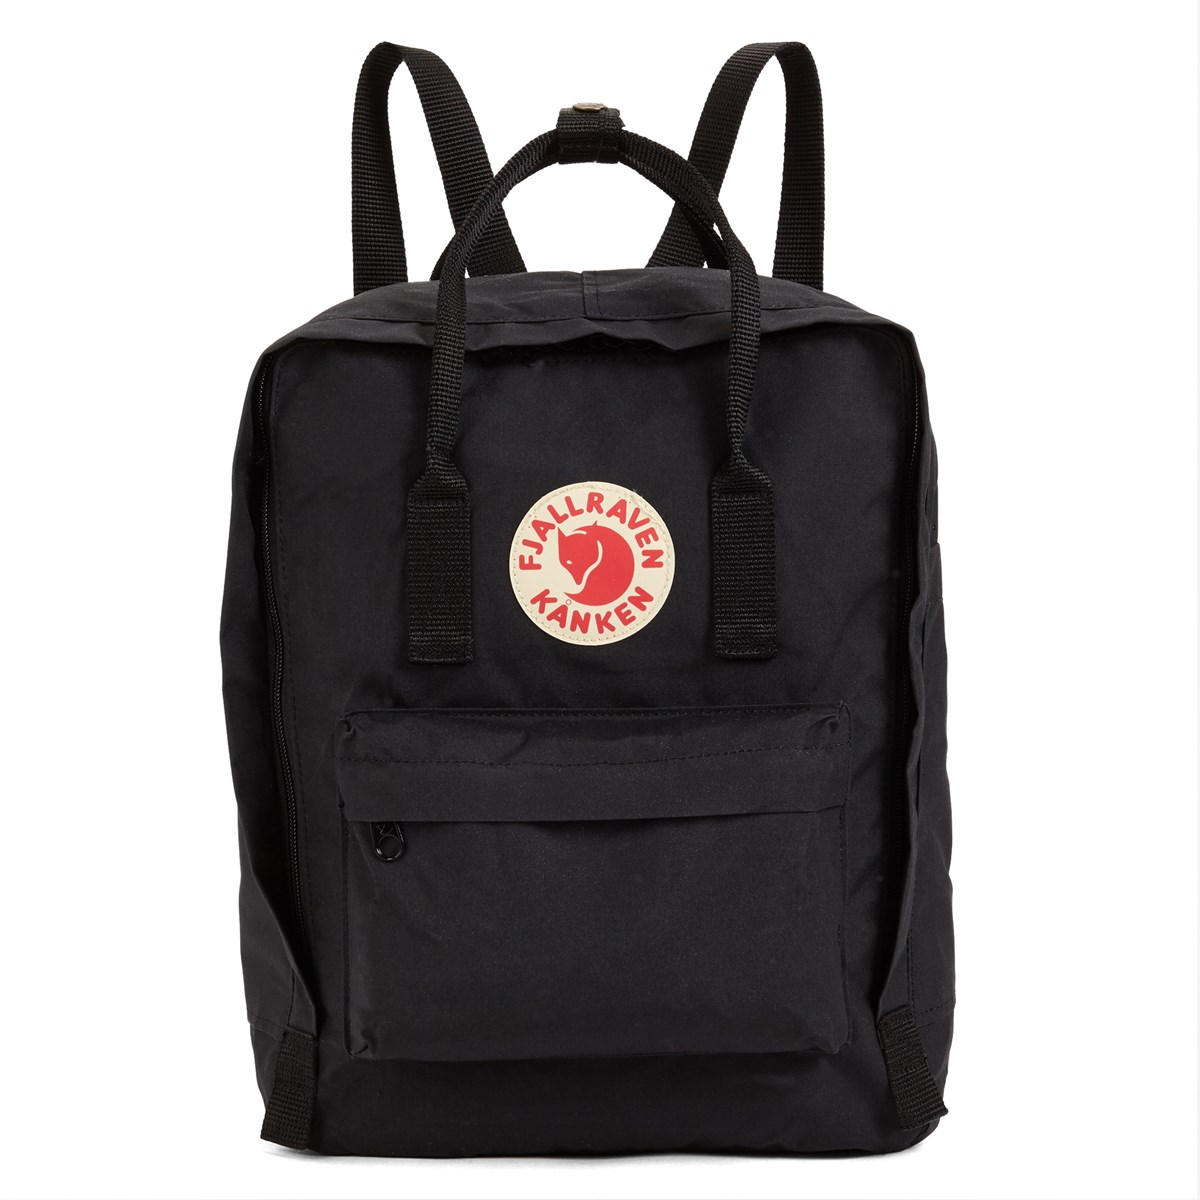 7784134f1 Kanken Backpack in Black. Previous. default view; ALT1; ALT2